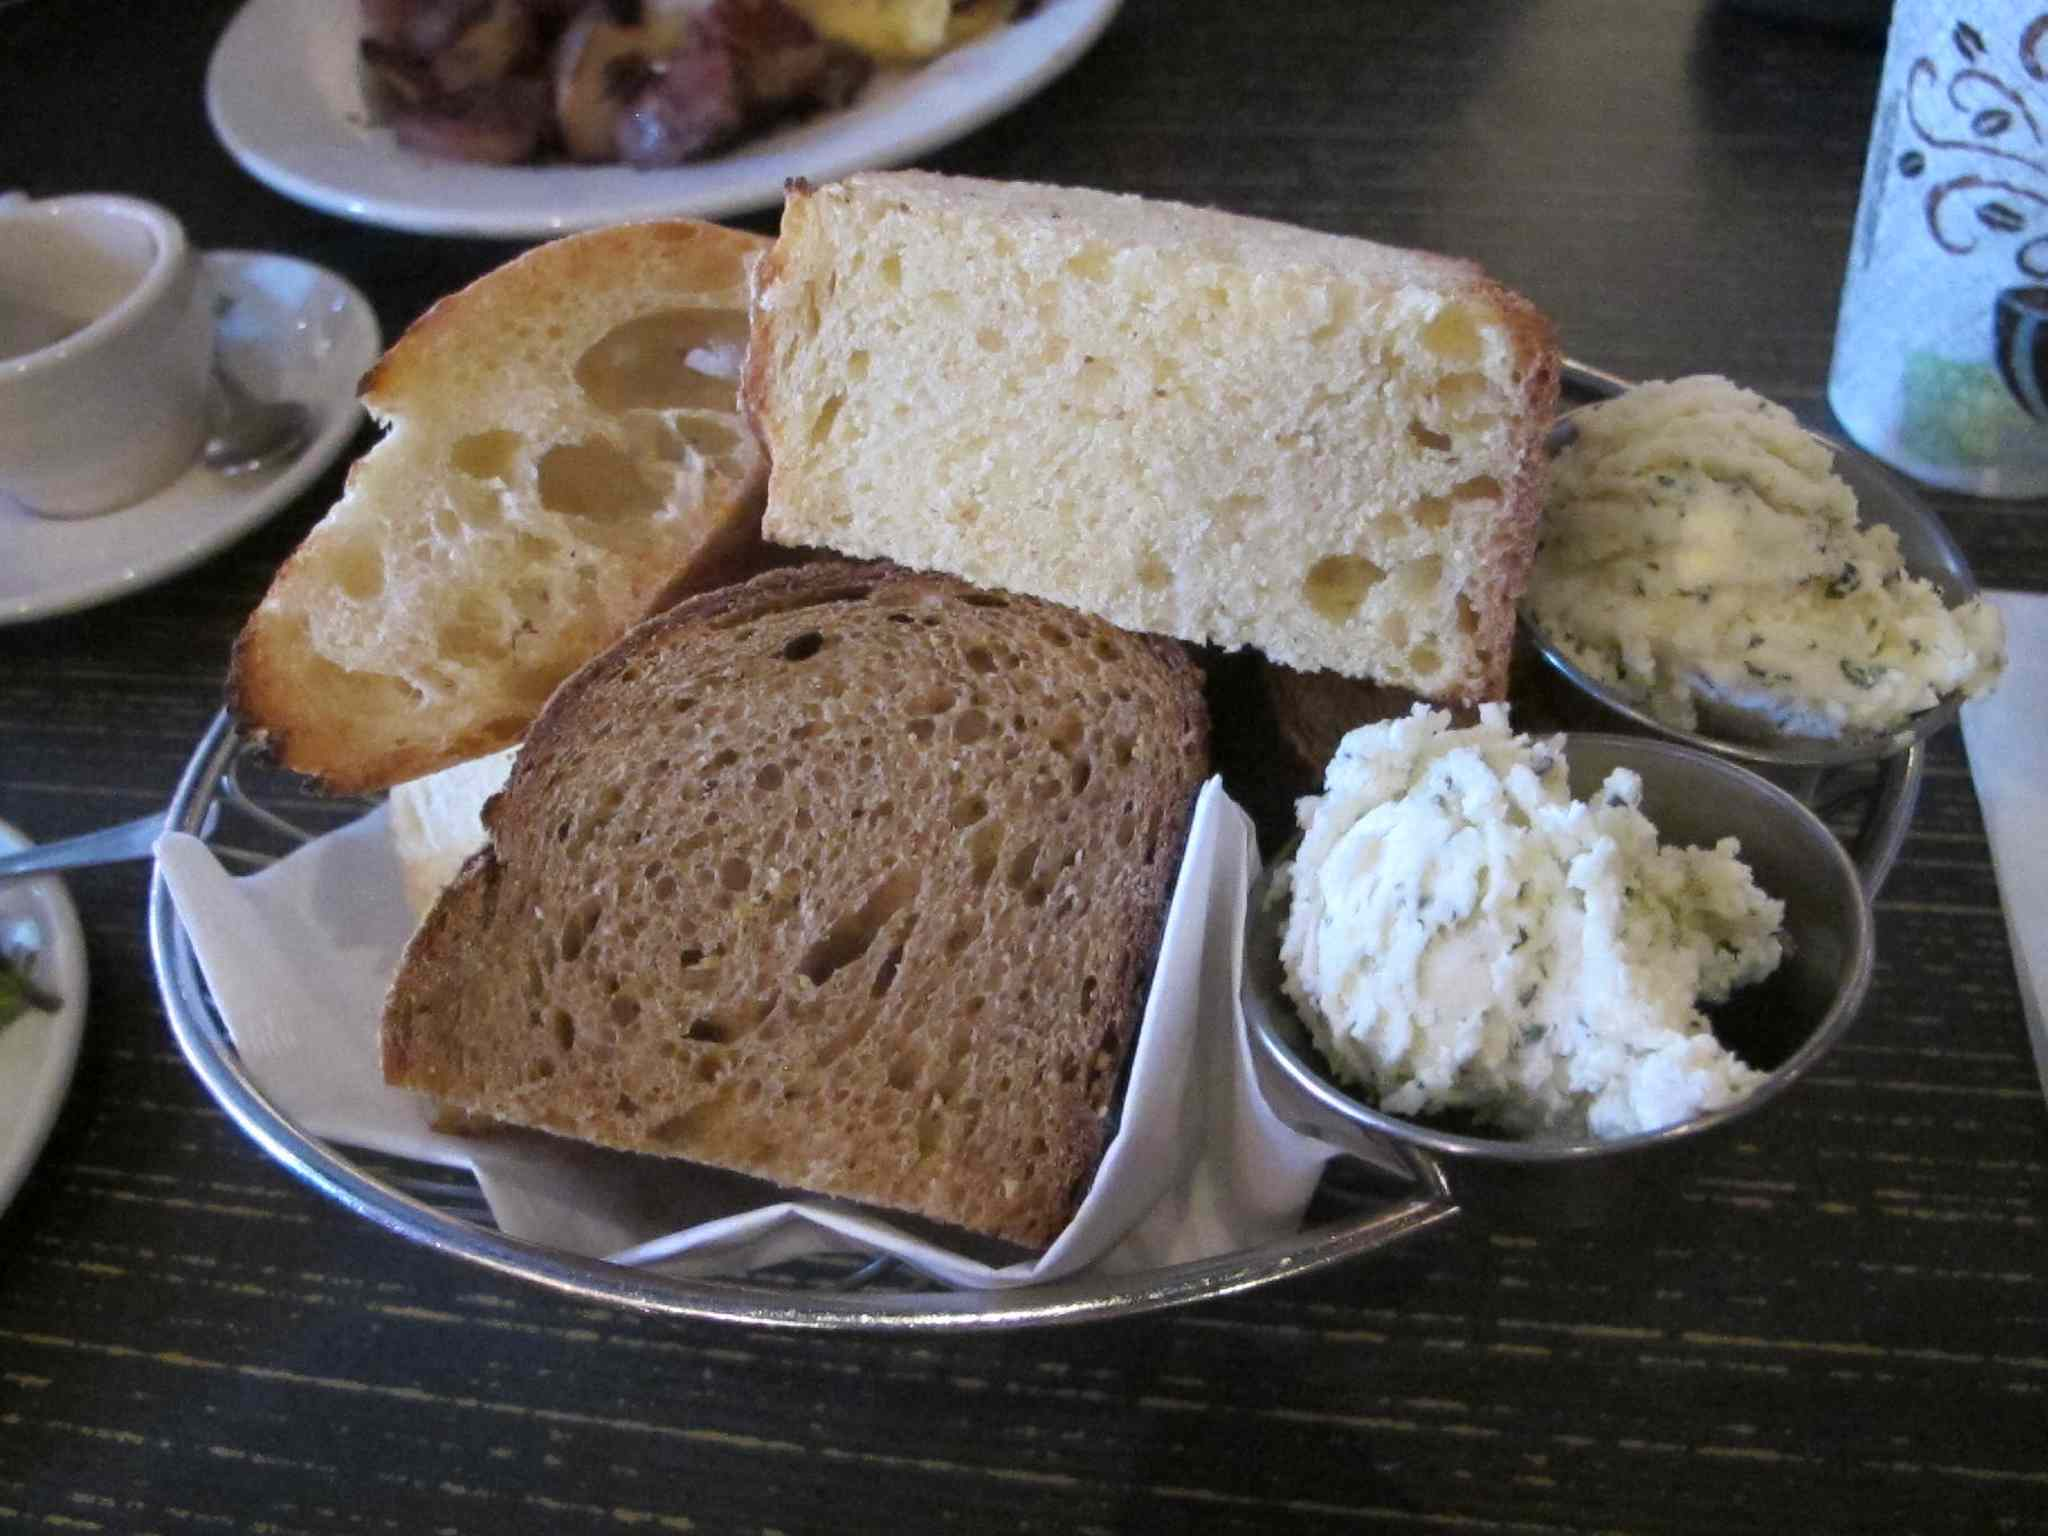 Breadbasket at Café Zola.